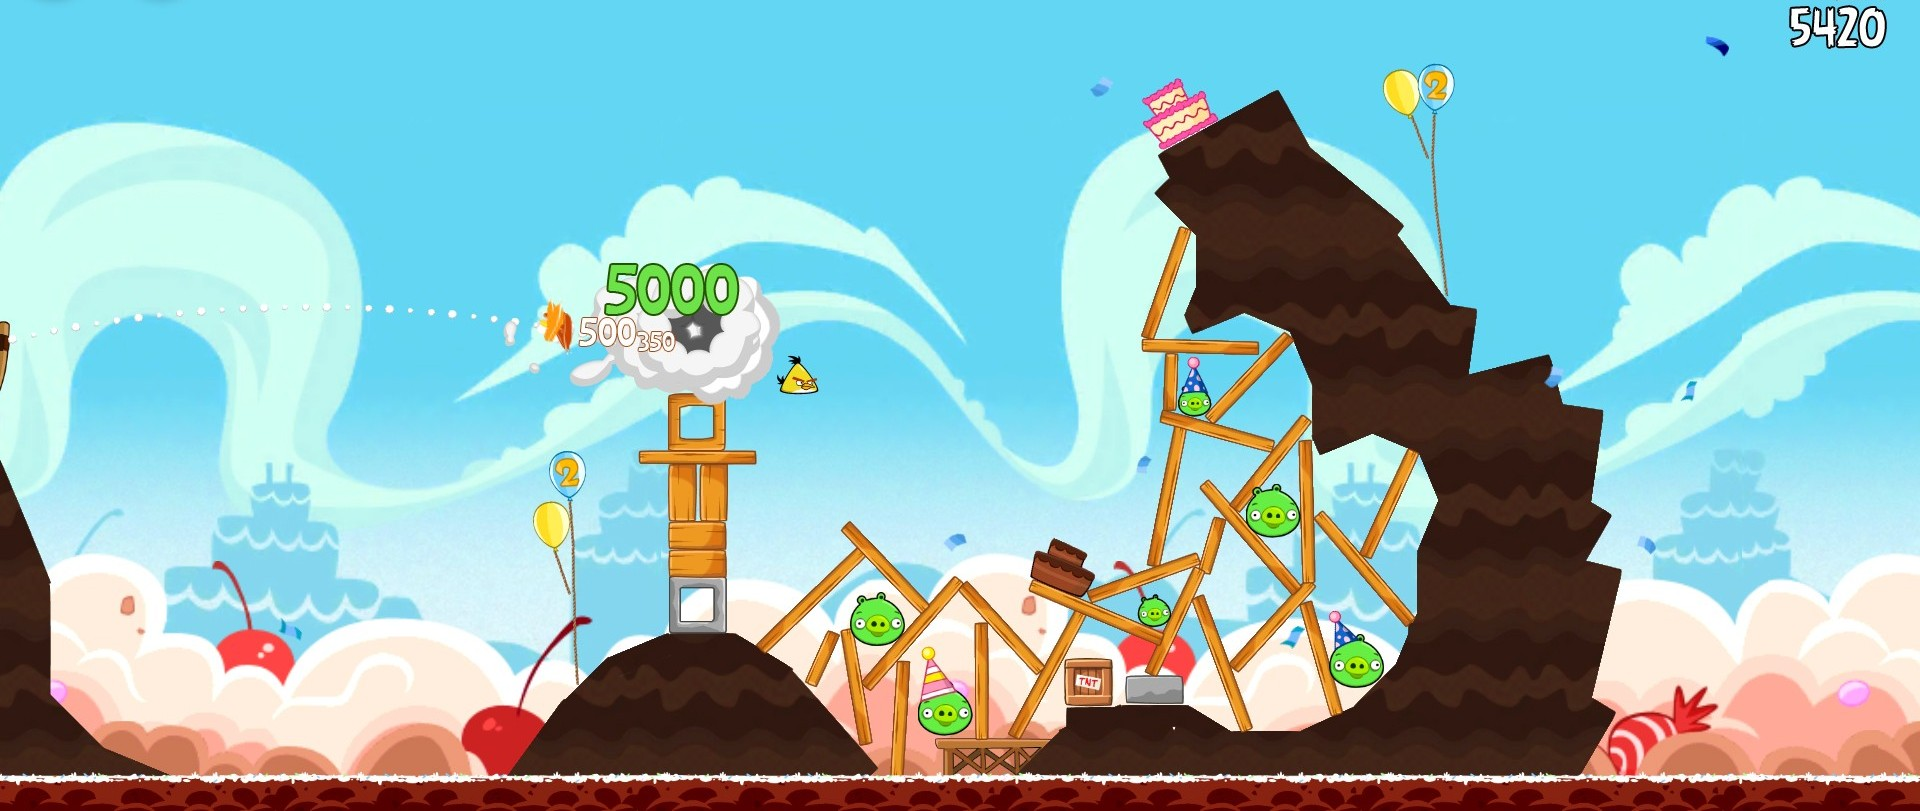 Angry Birds_Screenshot_EN_02_1920x1080_BirddayParty_MightyEagle